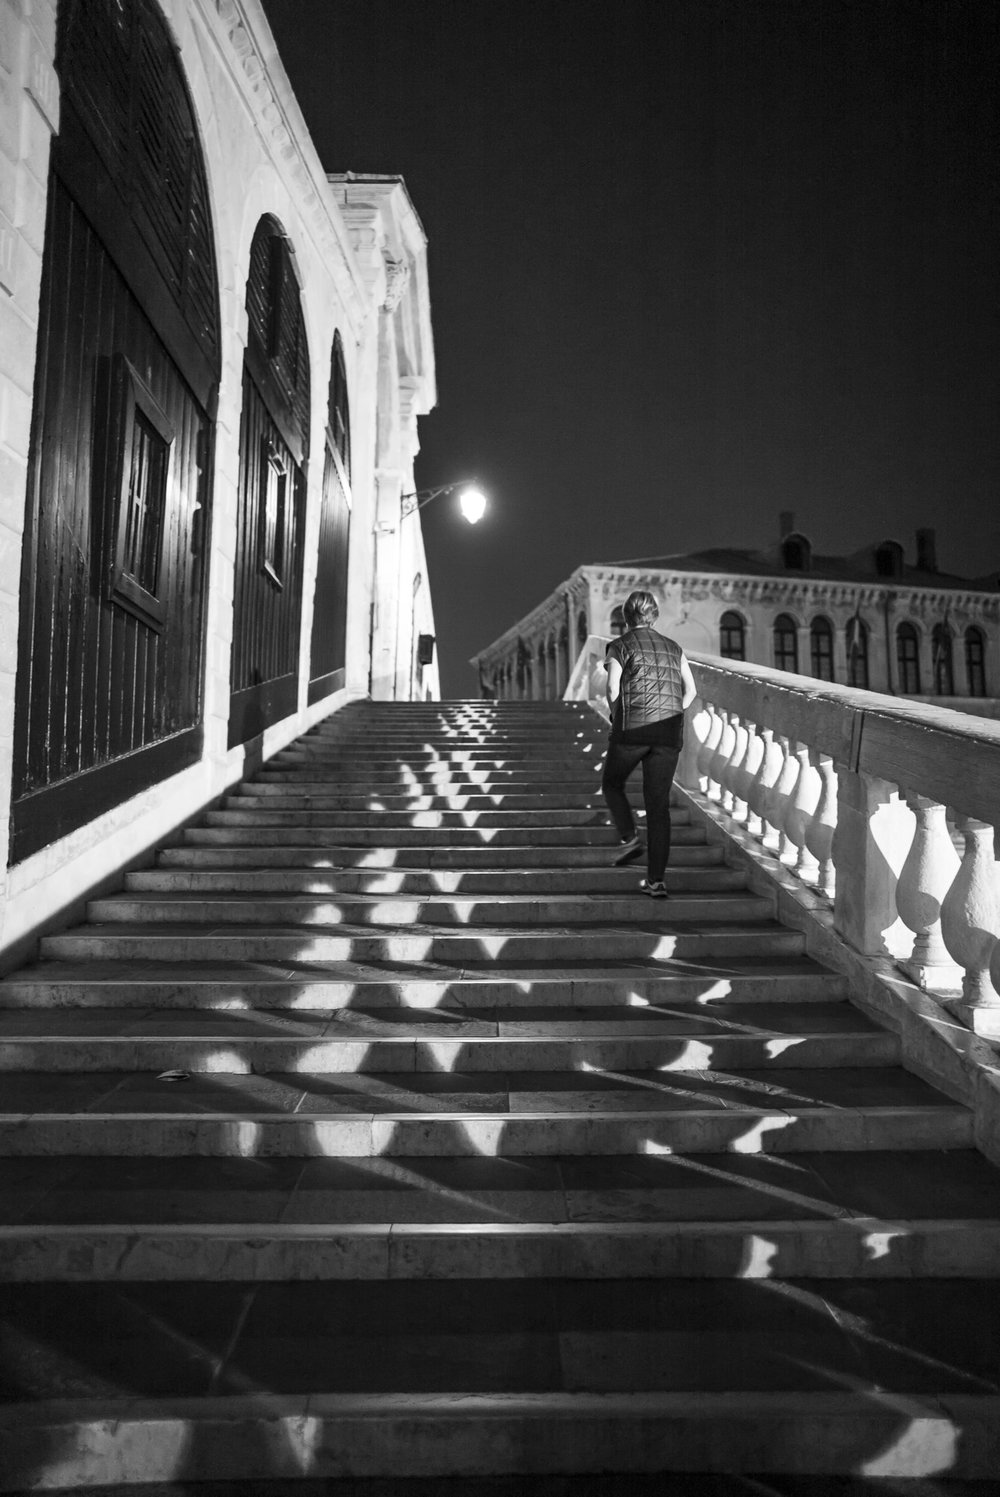 Steps of Rialto at night